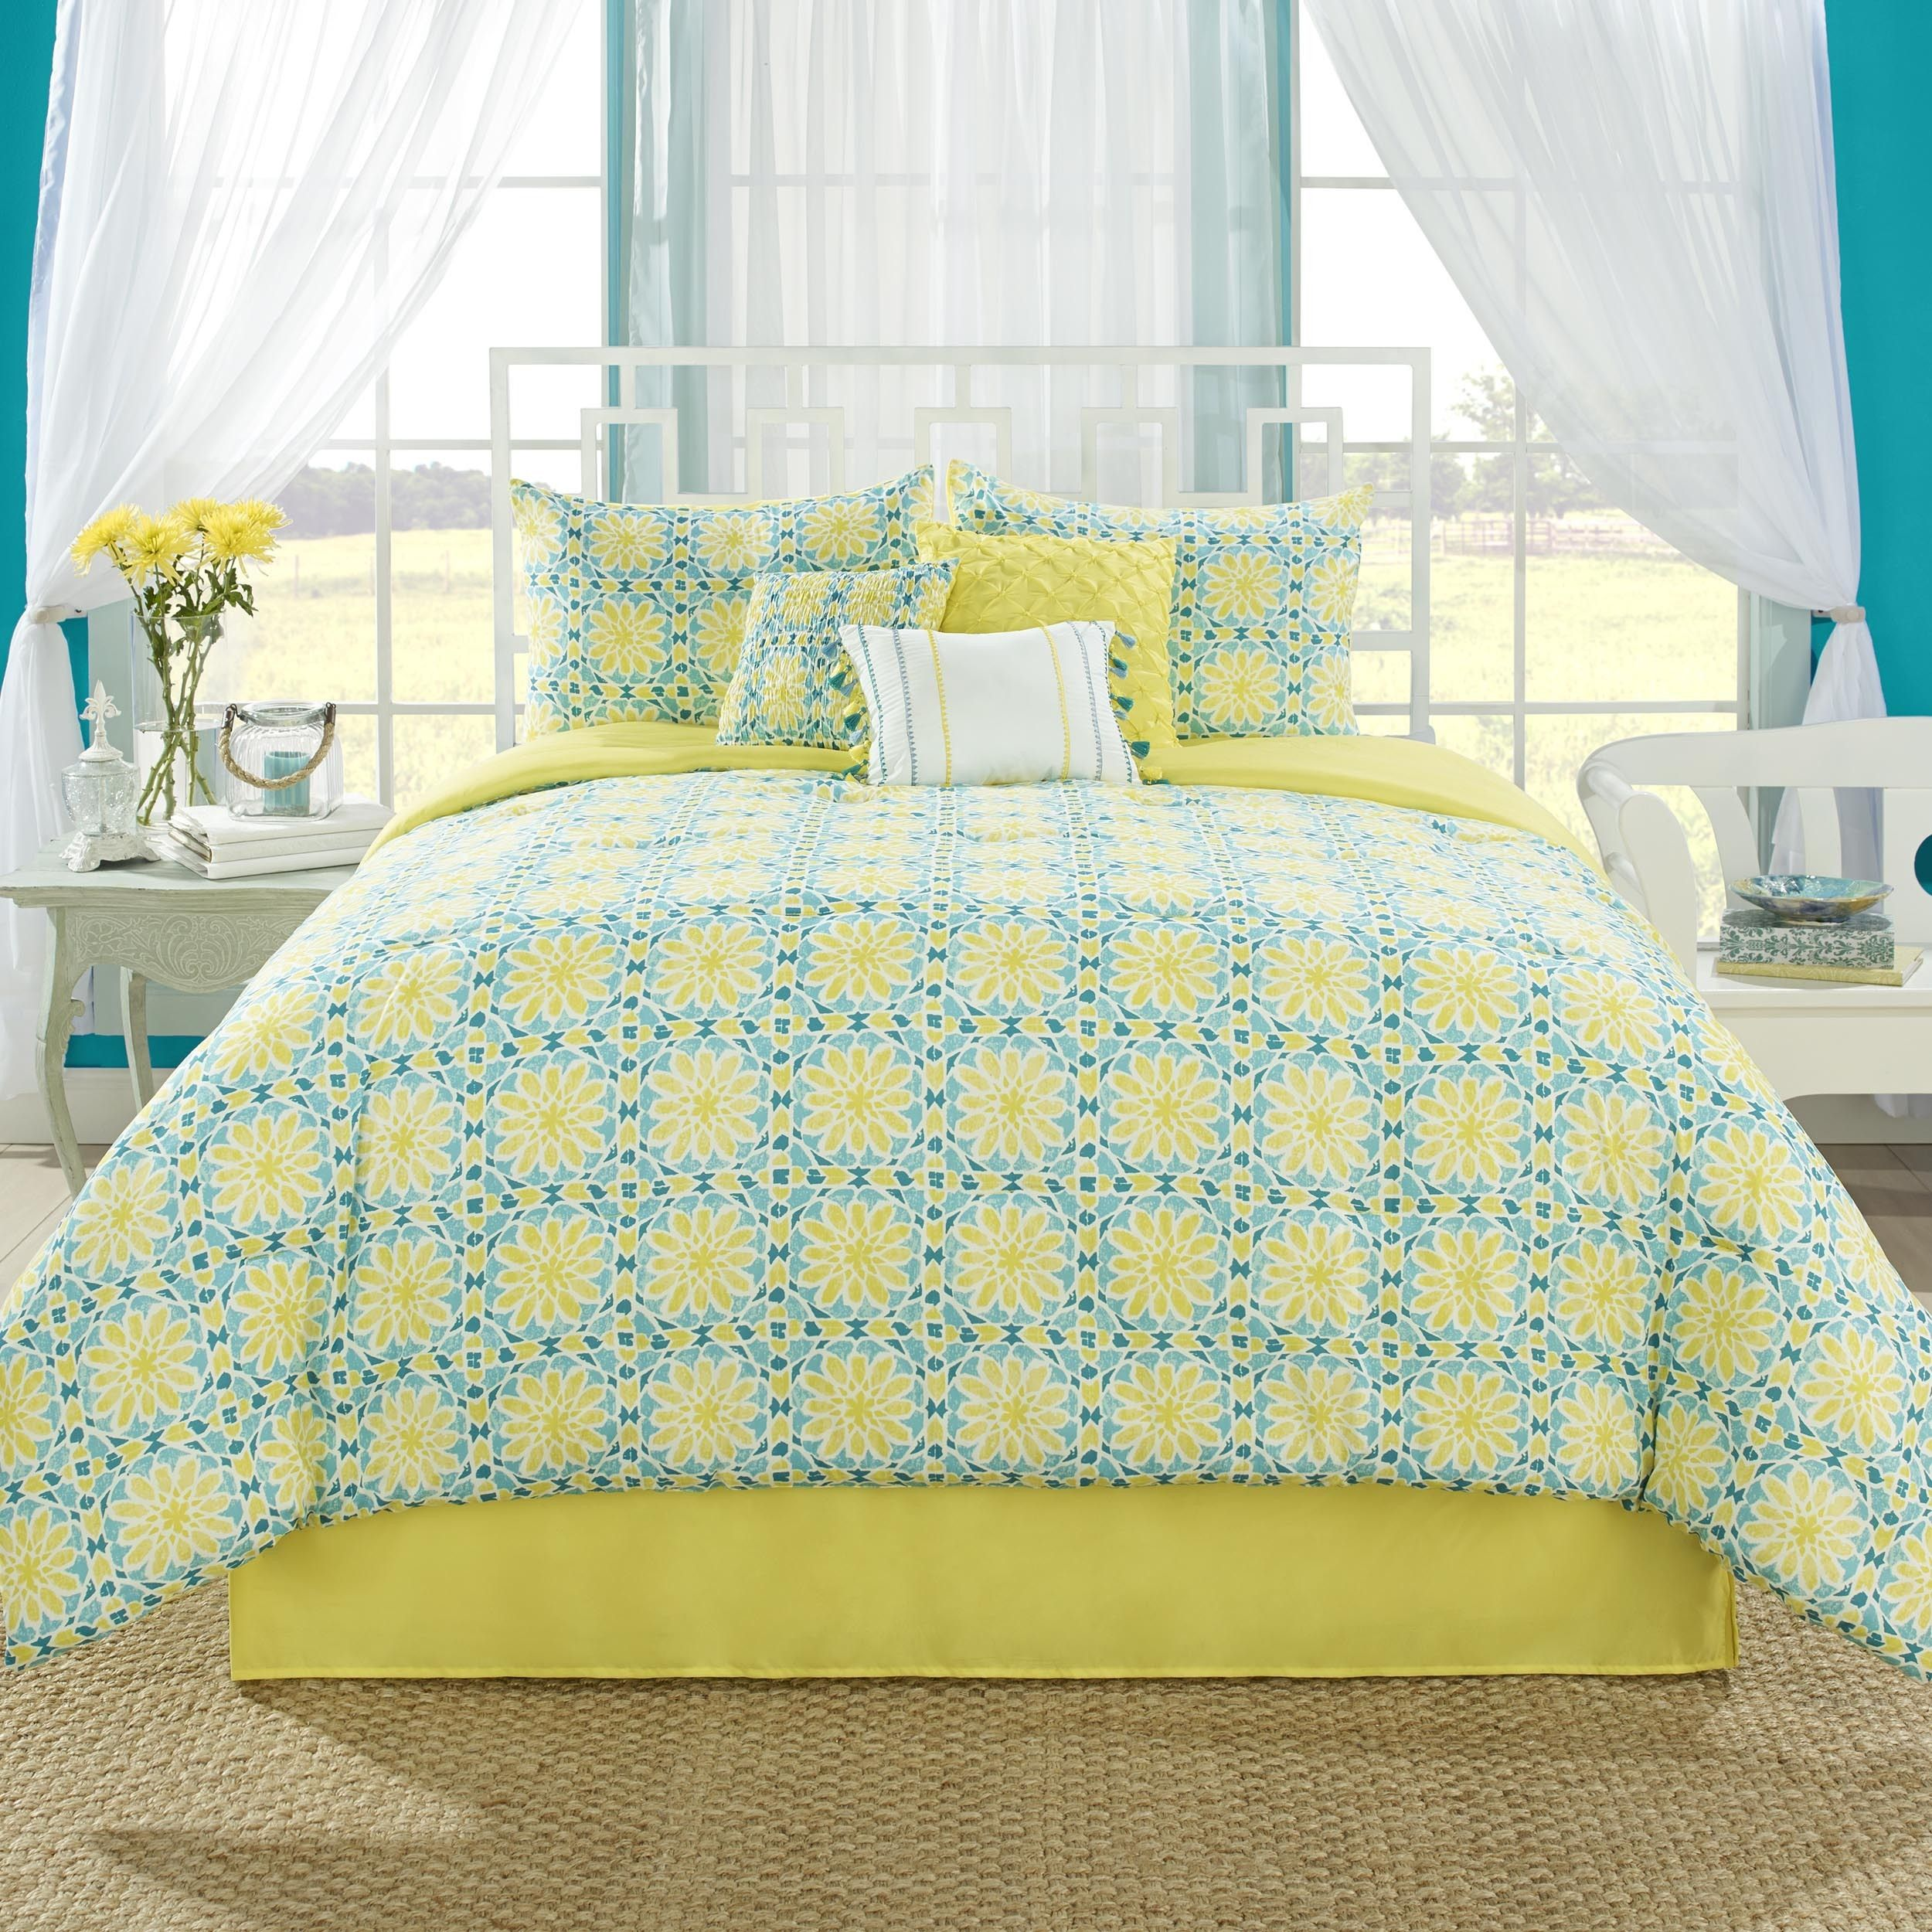 High Quality This Will Add A Pop Of Color To Your Bedroom. Comforter And Shams Feature A